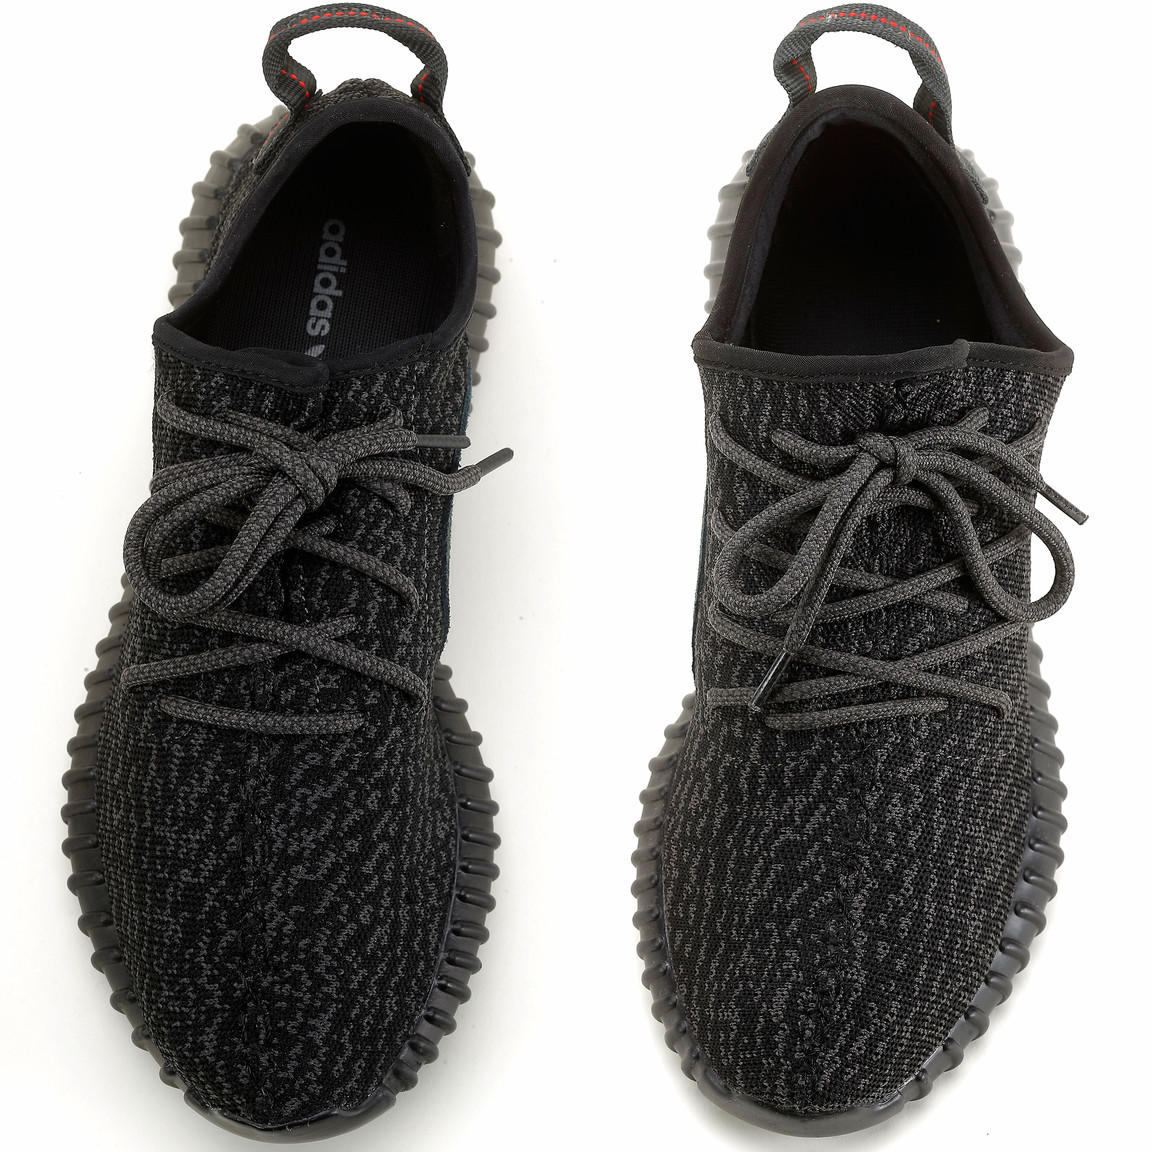 afde688e5eb1 Counterfeit Yeezys and the booming sneaker black market - Los ...